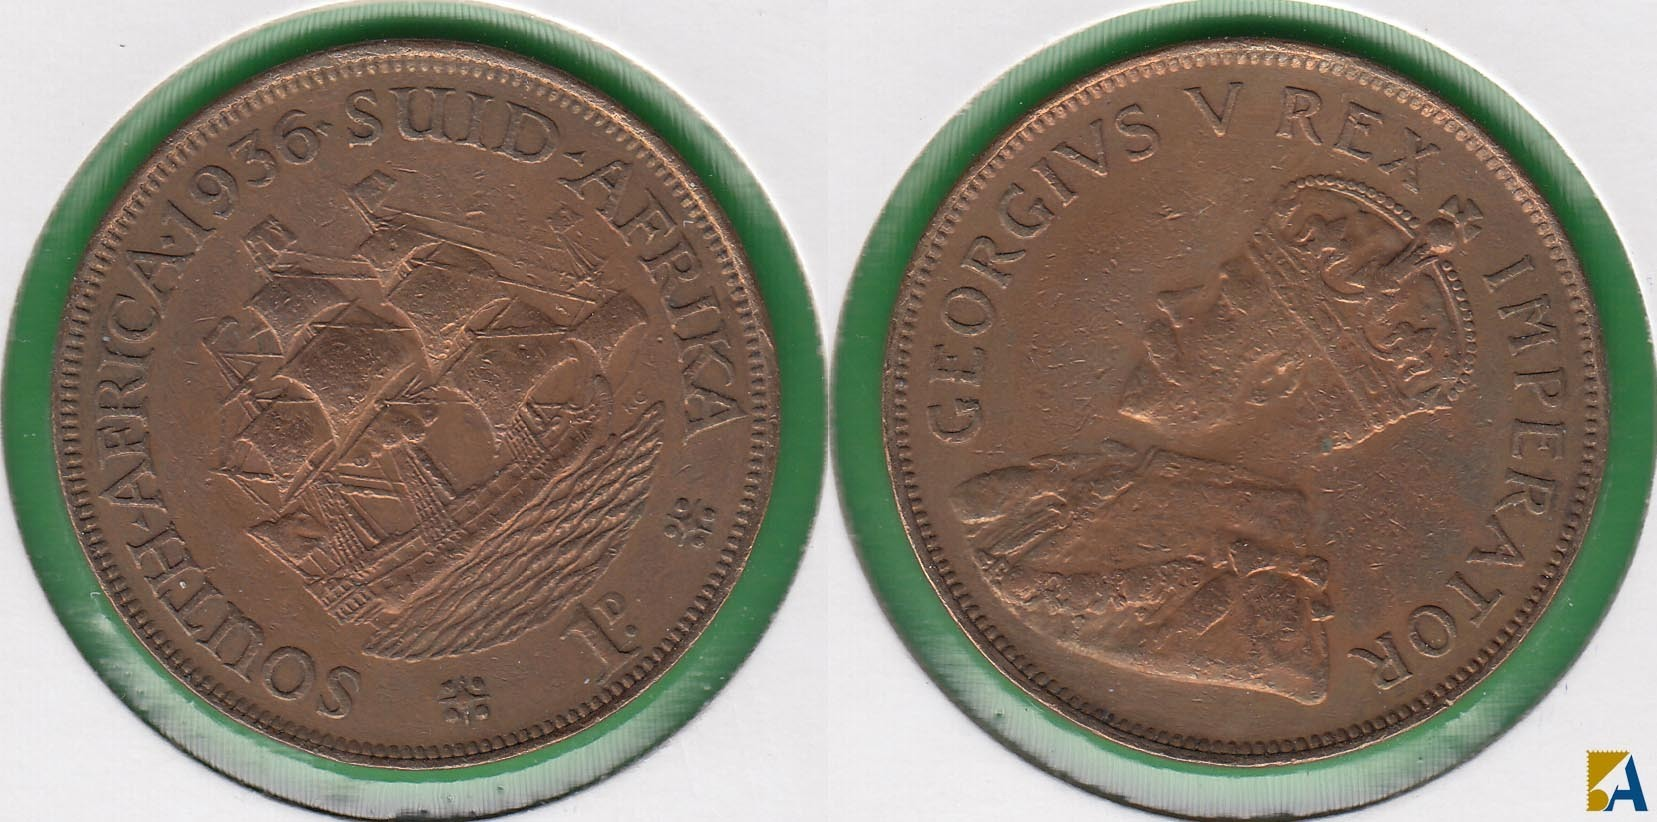 SUDAFRICA - SOUTH AFRICA. 1 PENIQUE (PENNY) DE 1936. (2)